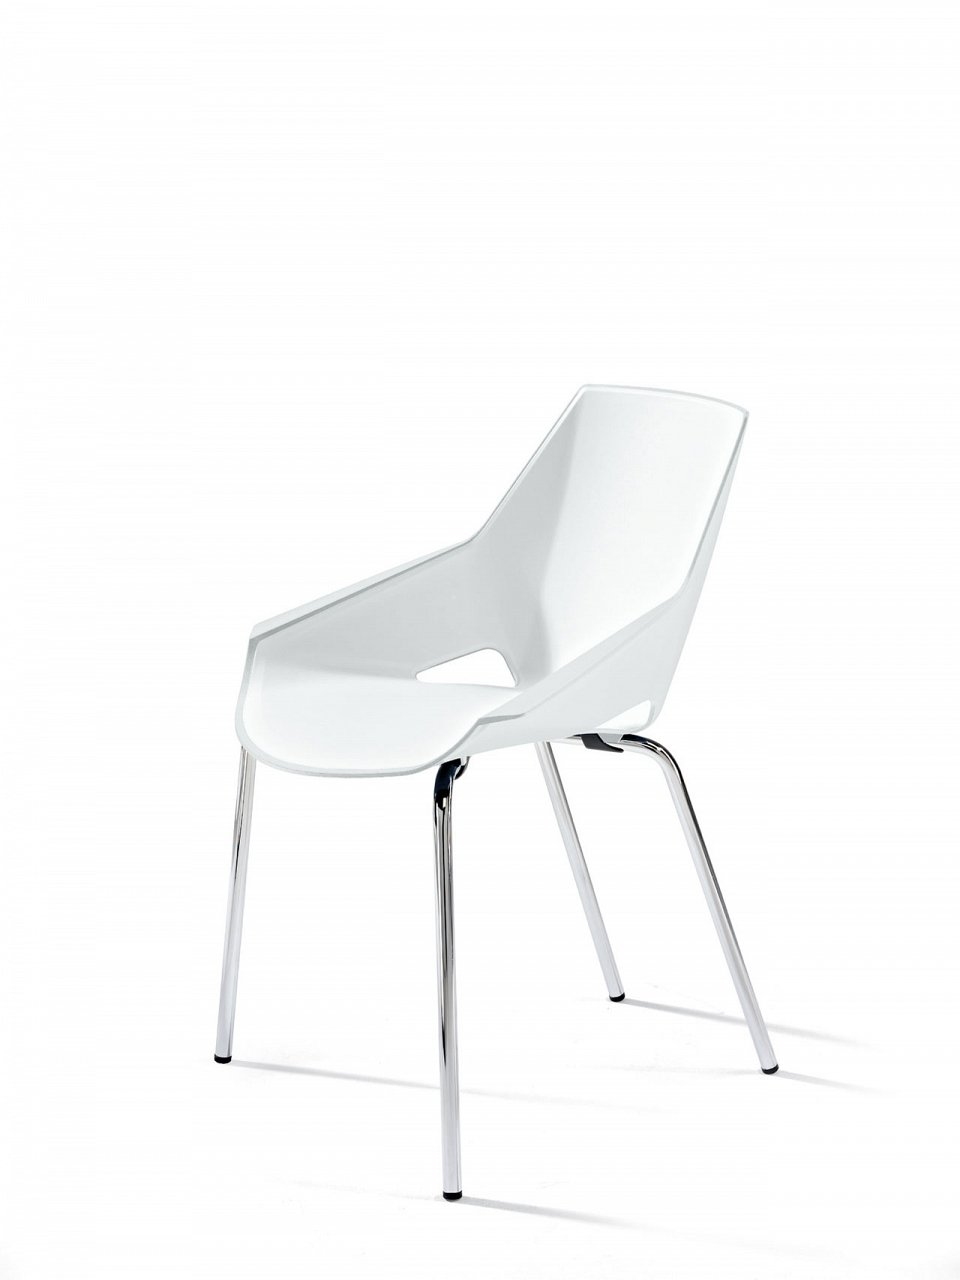 Viva Chair from Actiu